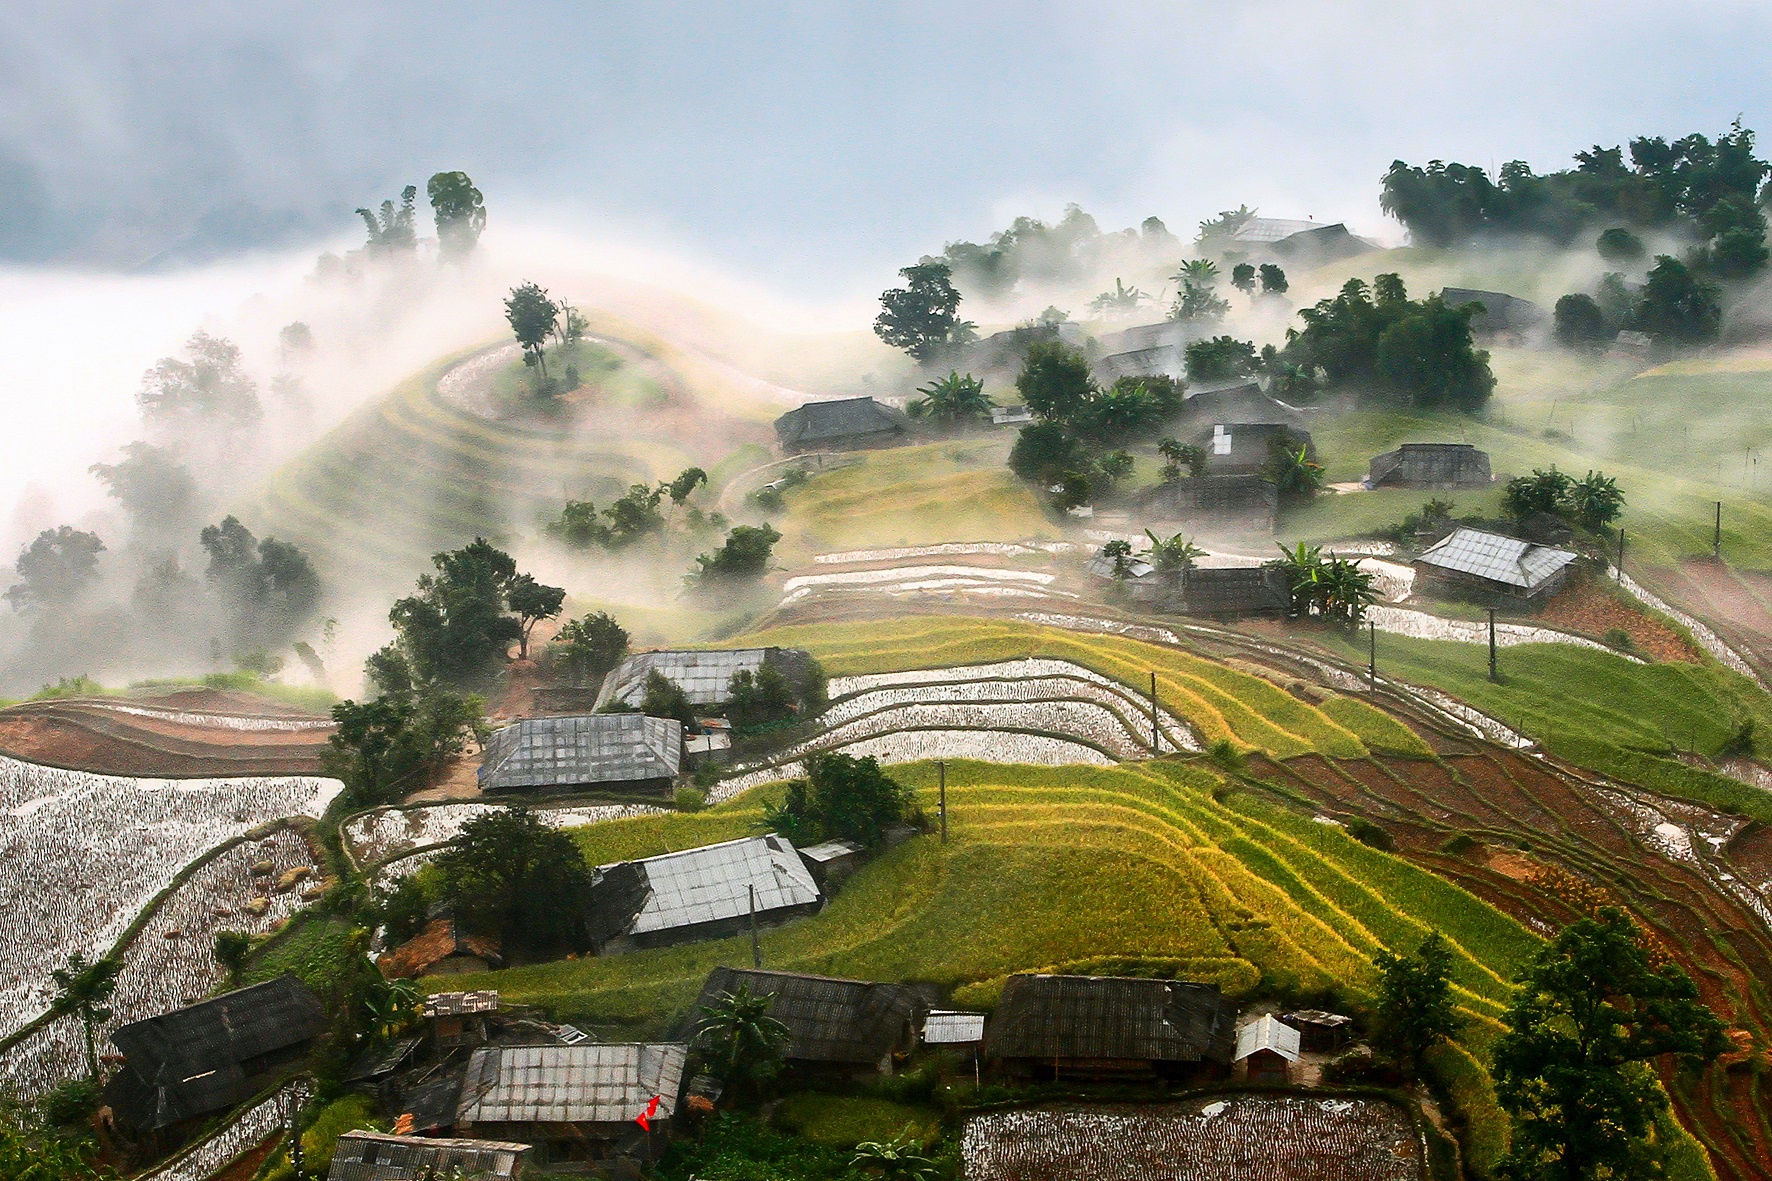 Captivating scenes of Hoang Su Phi ripening terraced fields